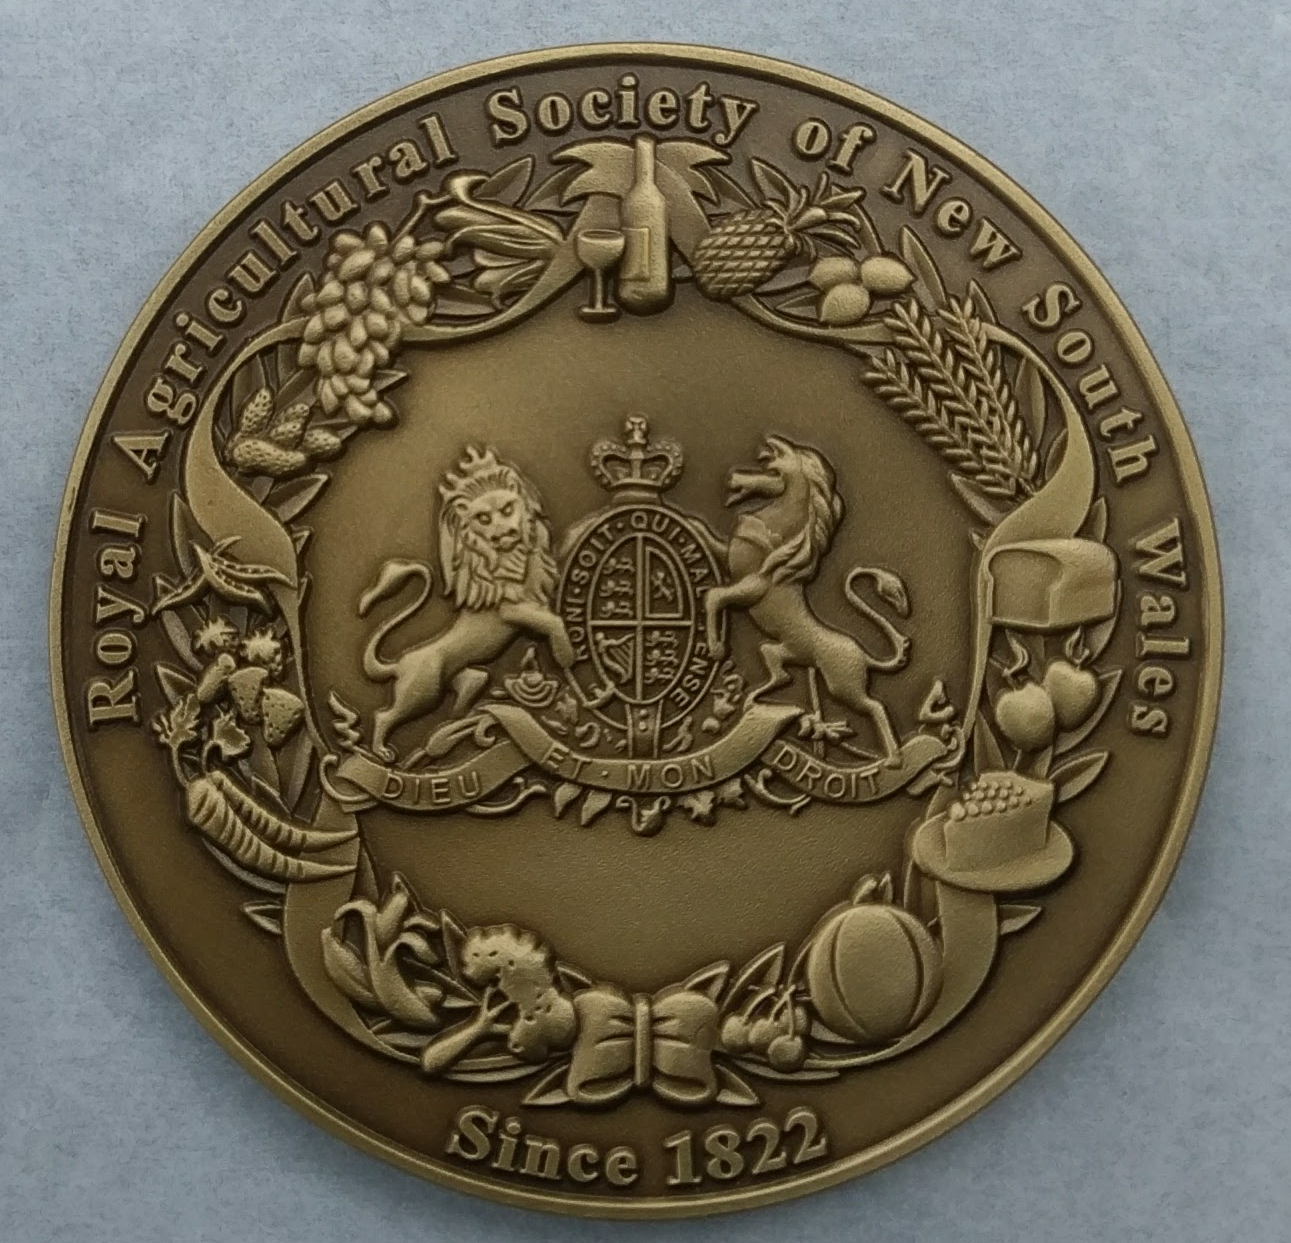 Sydney Royal Medal of Excellence Reverse